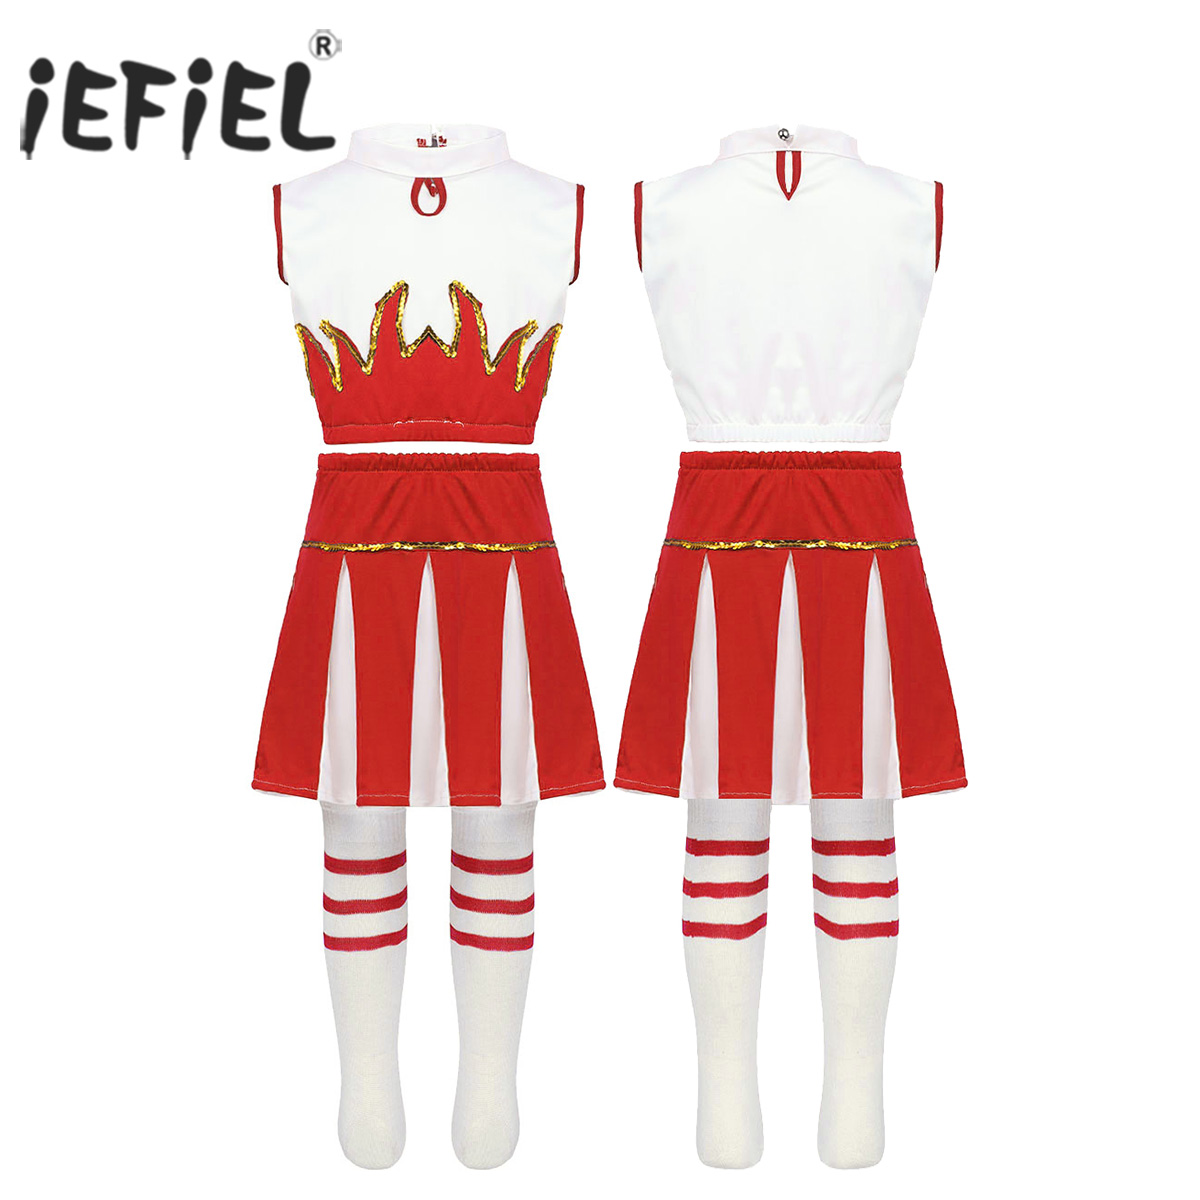 Kids Girls Cheerleader Costume Ballerina Sleeveless Crop Top with Skirt and Socks Set for Cosplay Party Ballroom Dancewear